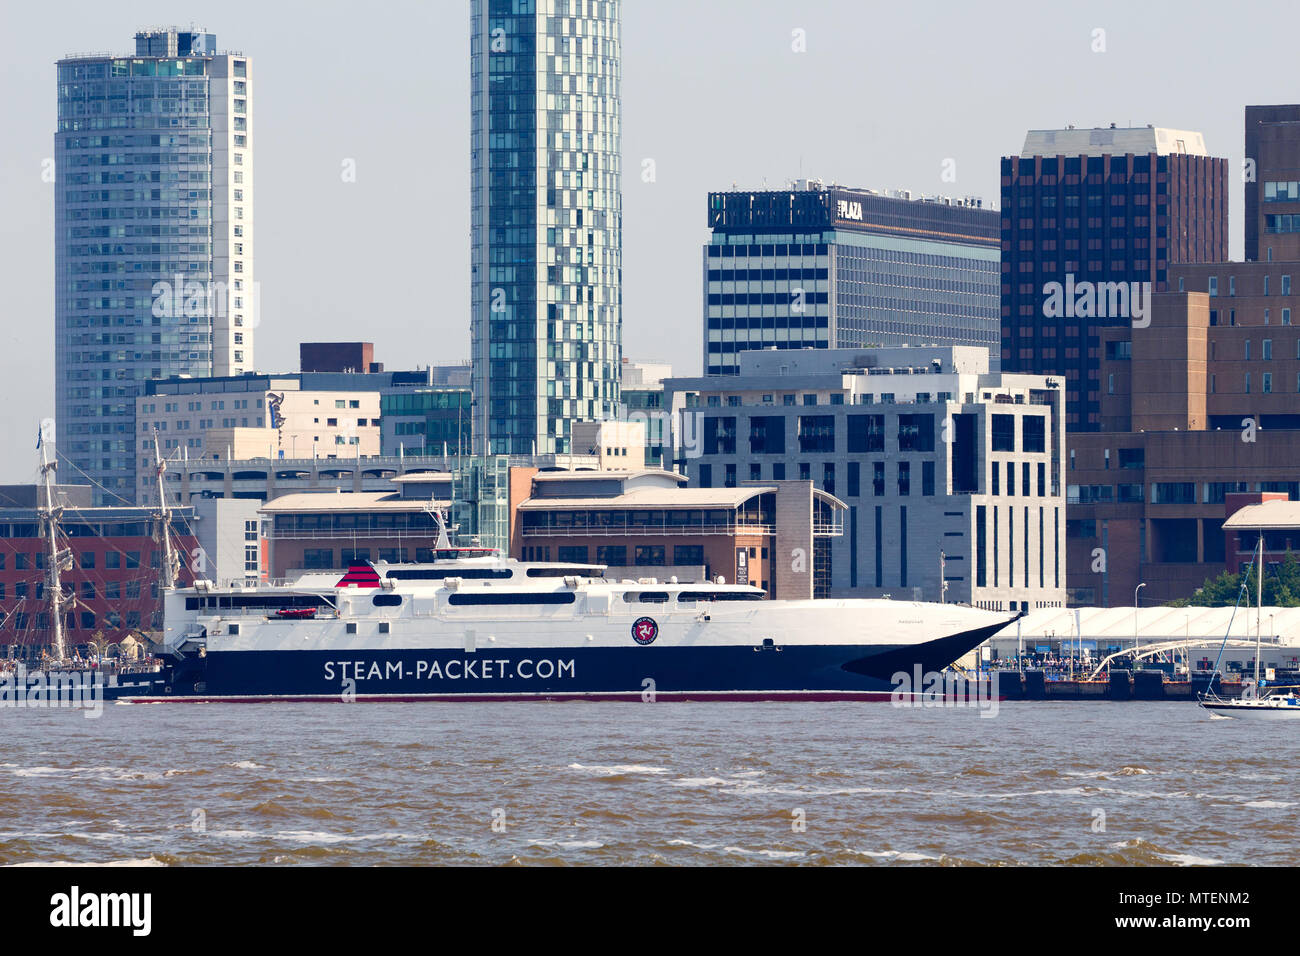 HSC Manannan a high-speed catamaran car ferry that runs between Douglas IOM and Liverpool at berth in Liverpool. - Stock Image